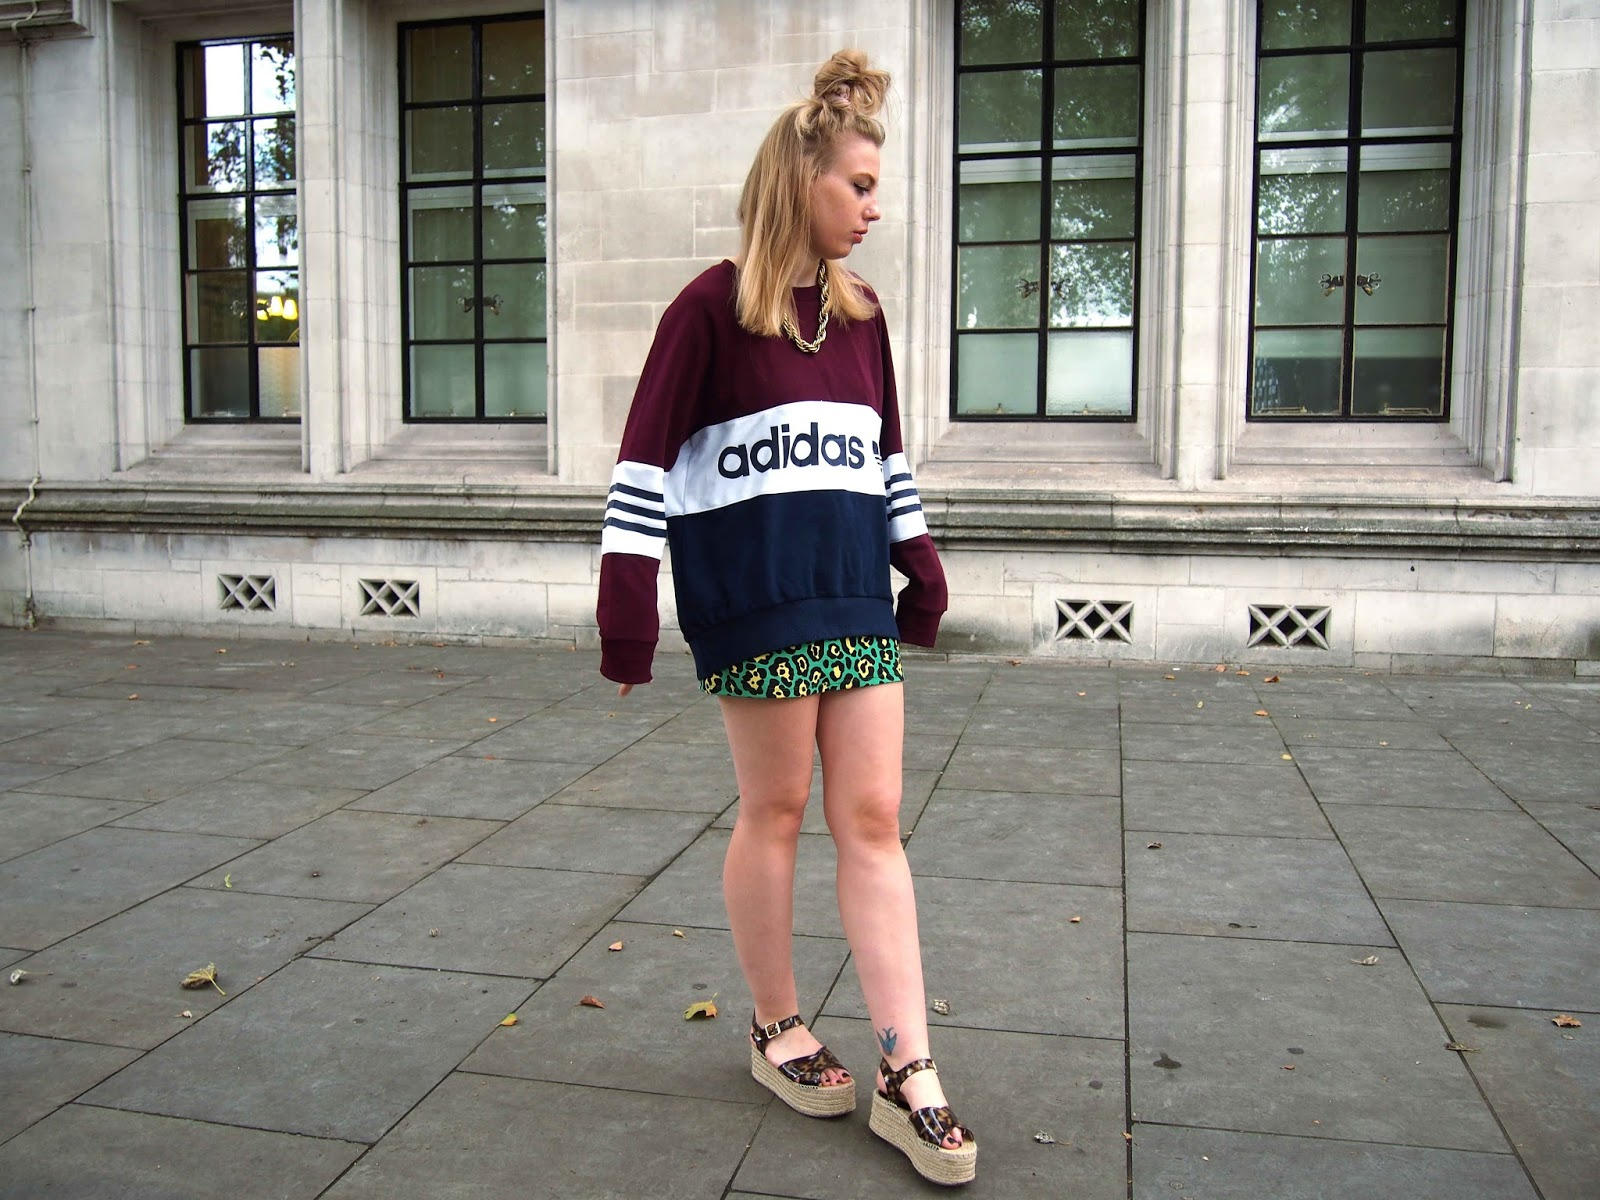 adidas jumper, gold vintage chunky chain, asos tiara flatform platform espadrilles, leopard print coord, ootn, grunge night outfit, colourful alternative ootd, festival style fashion 7